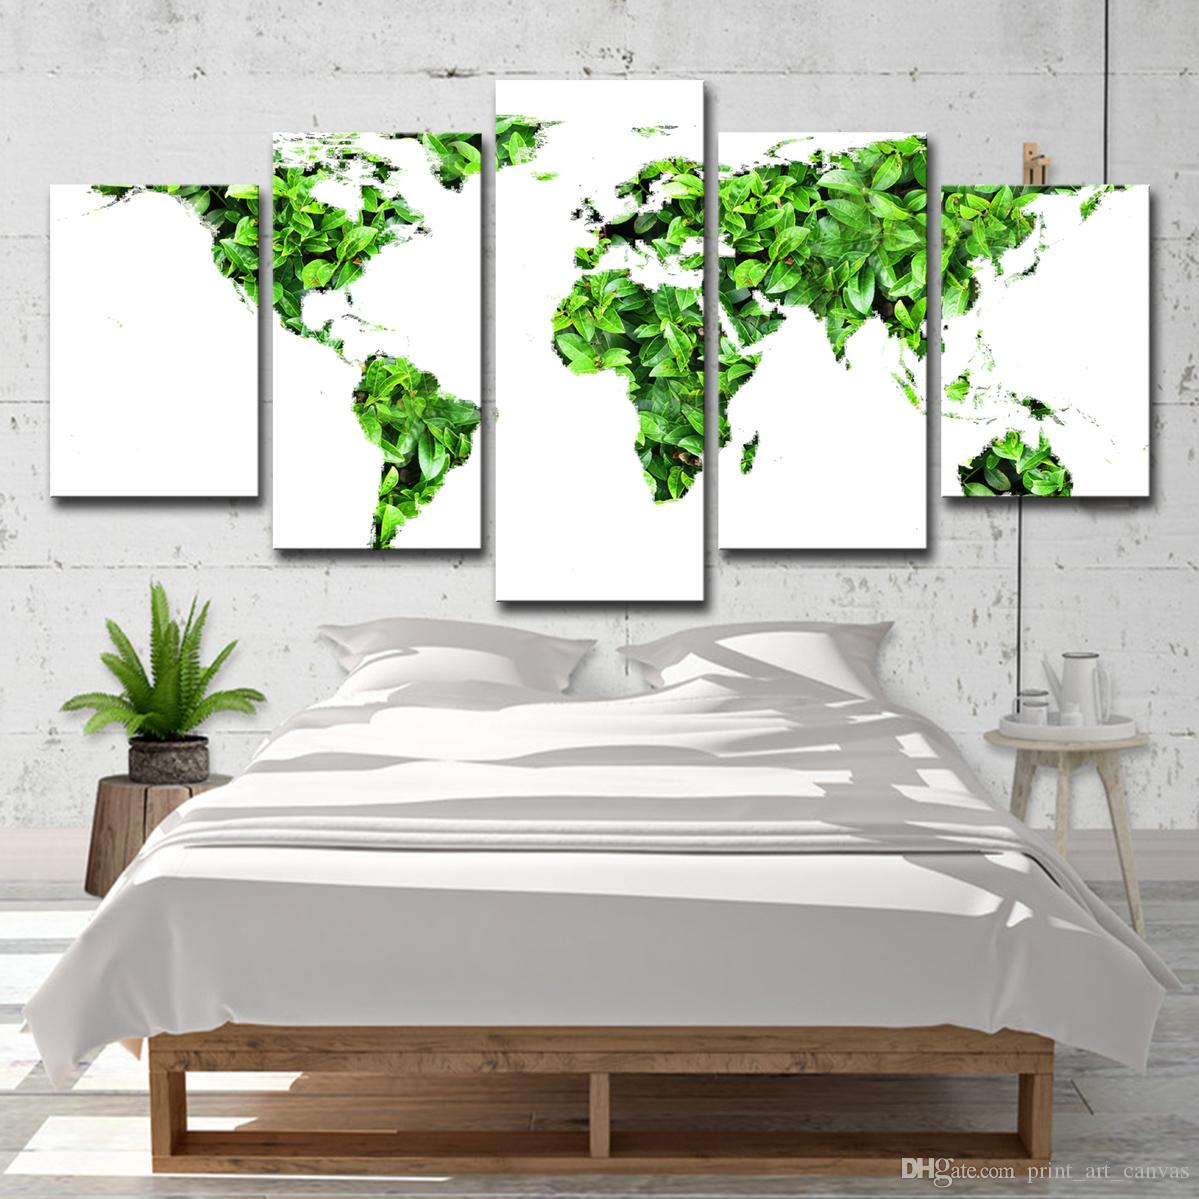 Canvas Wall Art HD Prints Pictures 5 Pieces Map Of The Small Fresh World Painting Home Decor Green Leaves Poster Living Room